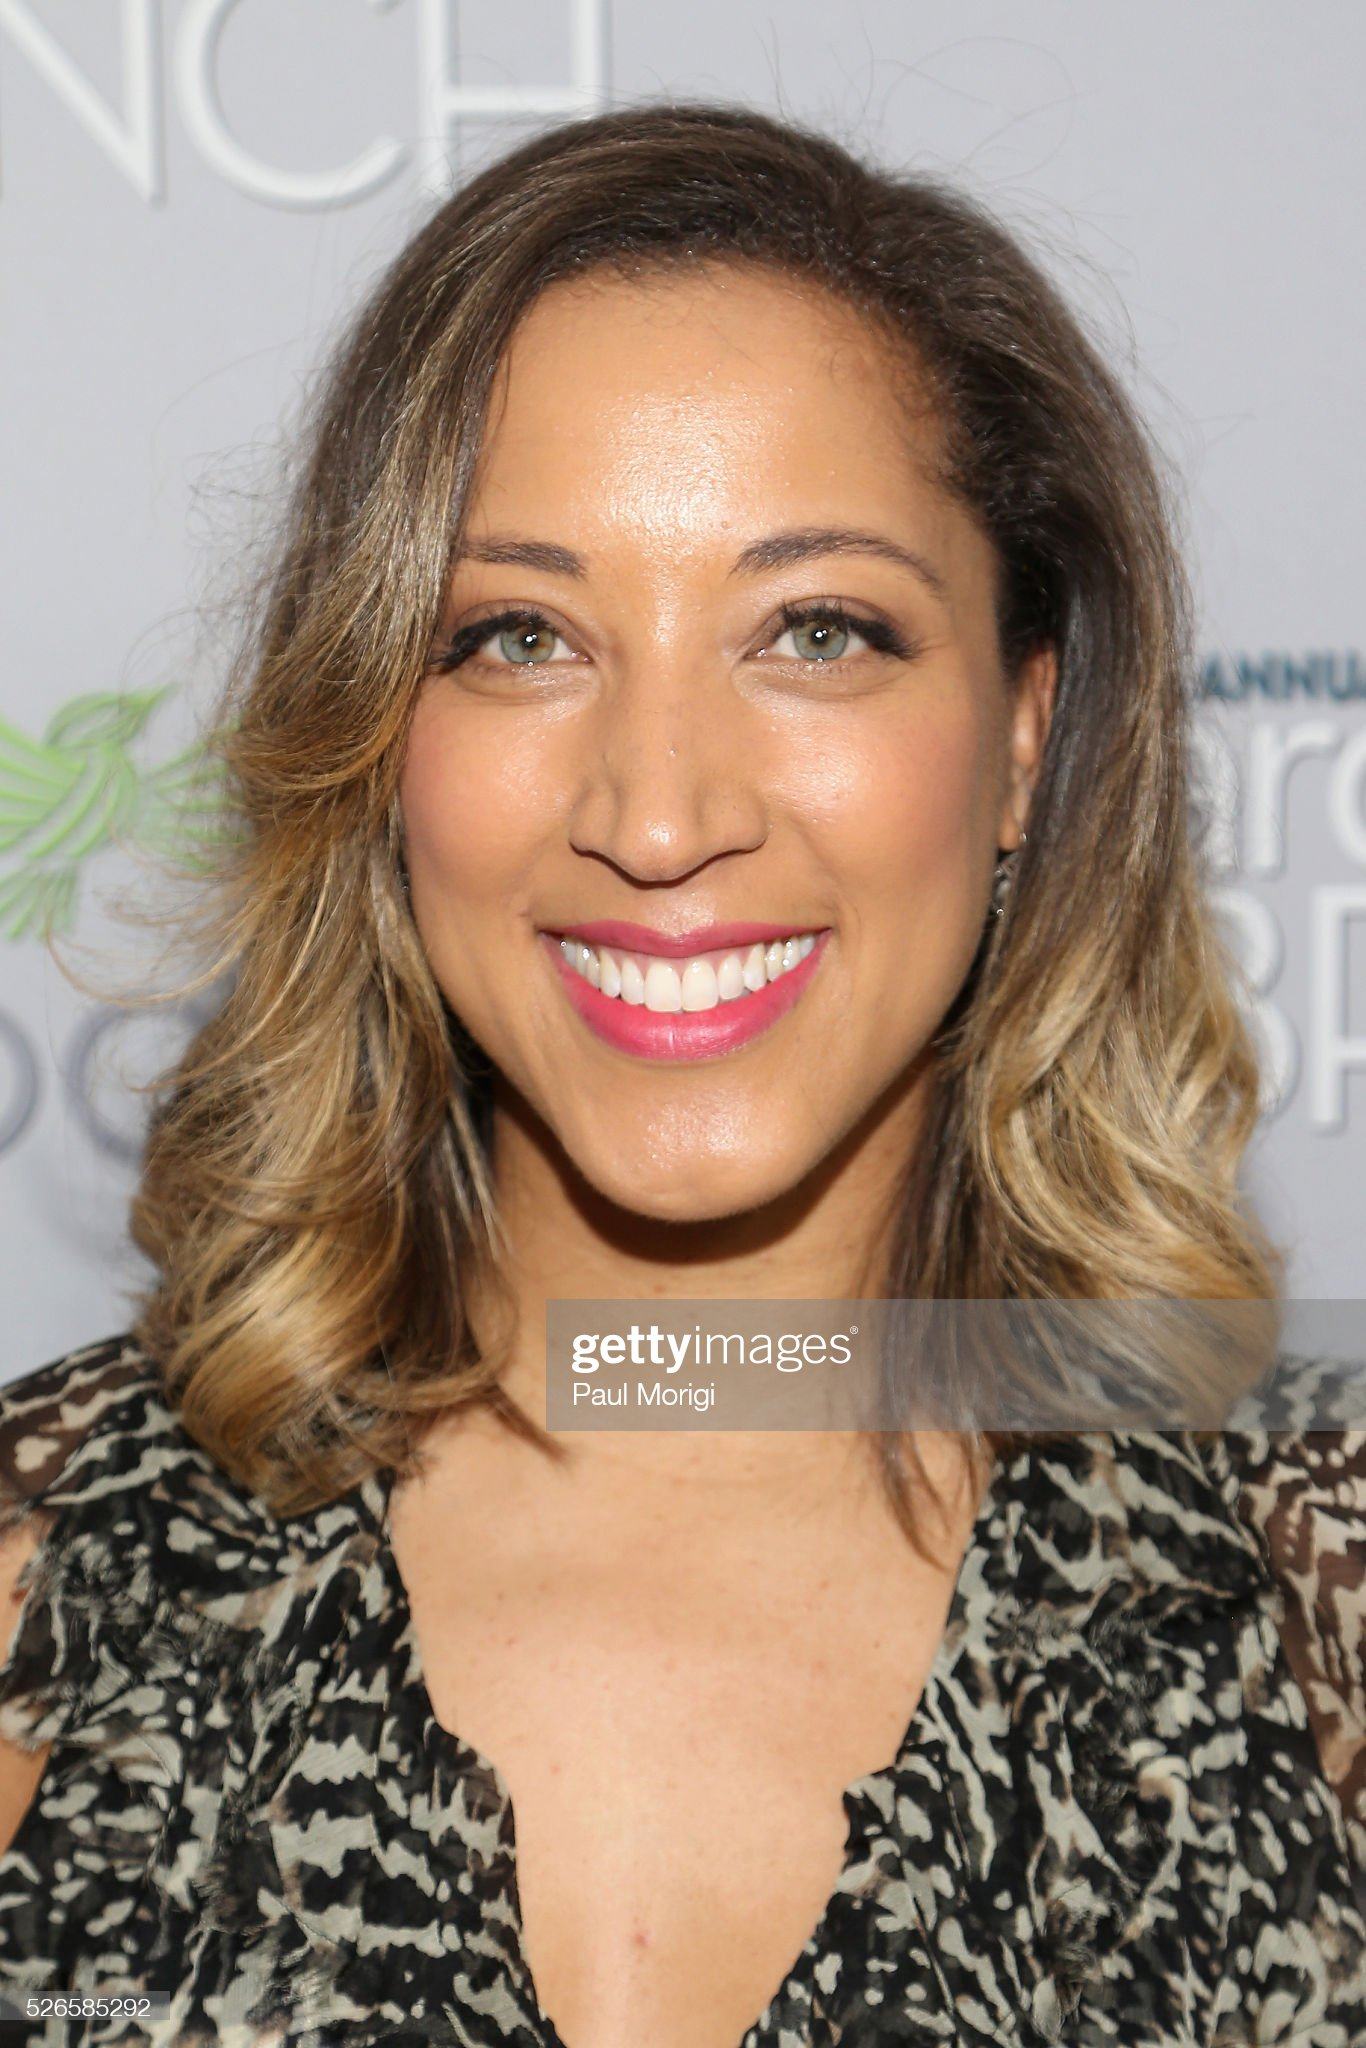 Ojos verdes - Famosas y famosos con los ojos de color VERDE Actress-robin-thede-attends-the-garden-brunch-prior-to-the-102nd-picture-id526585292?s=2048x2048